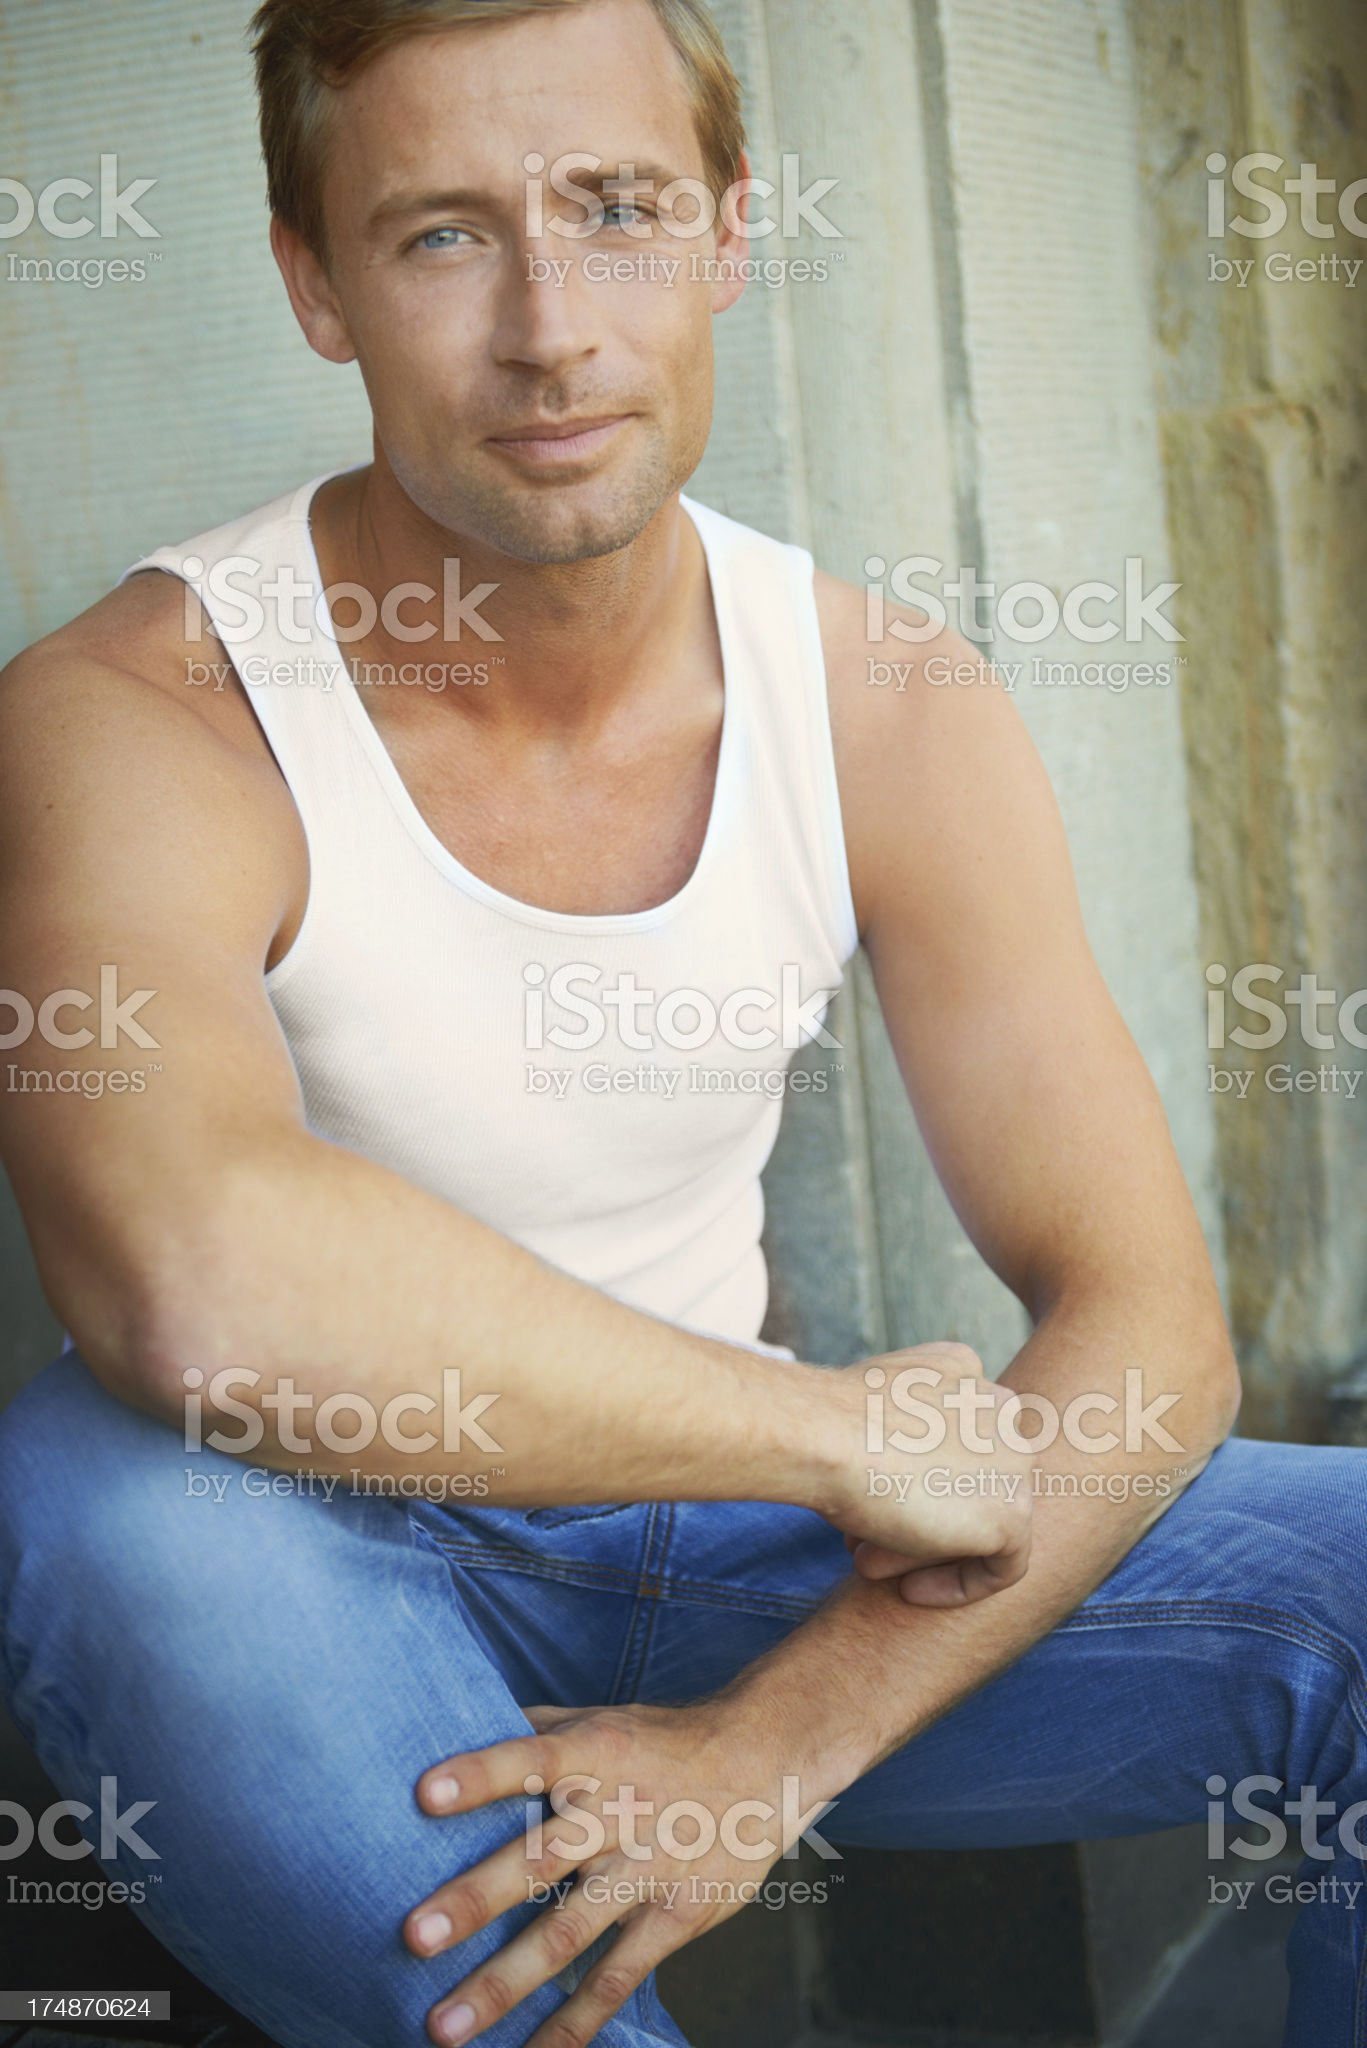 Hip and handsome royalty-free stock photo